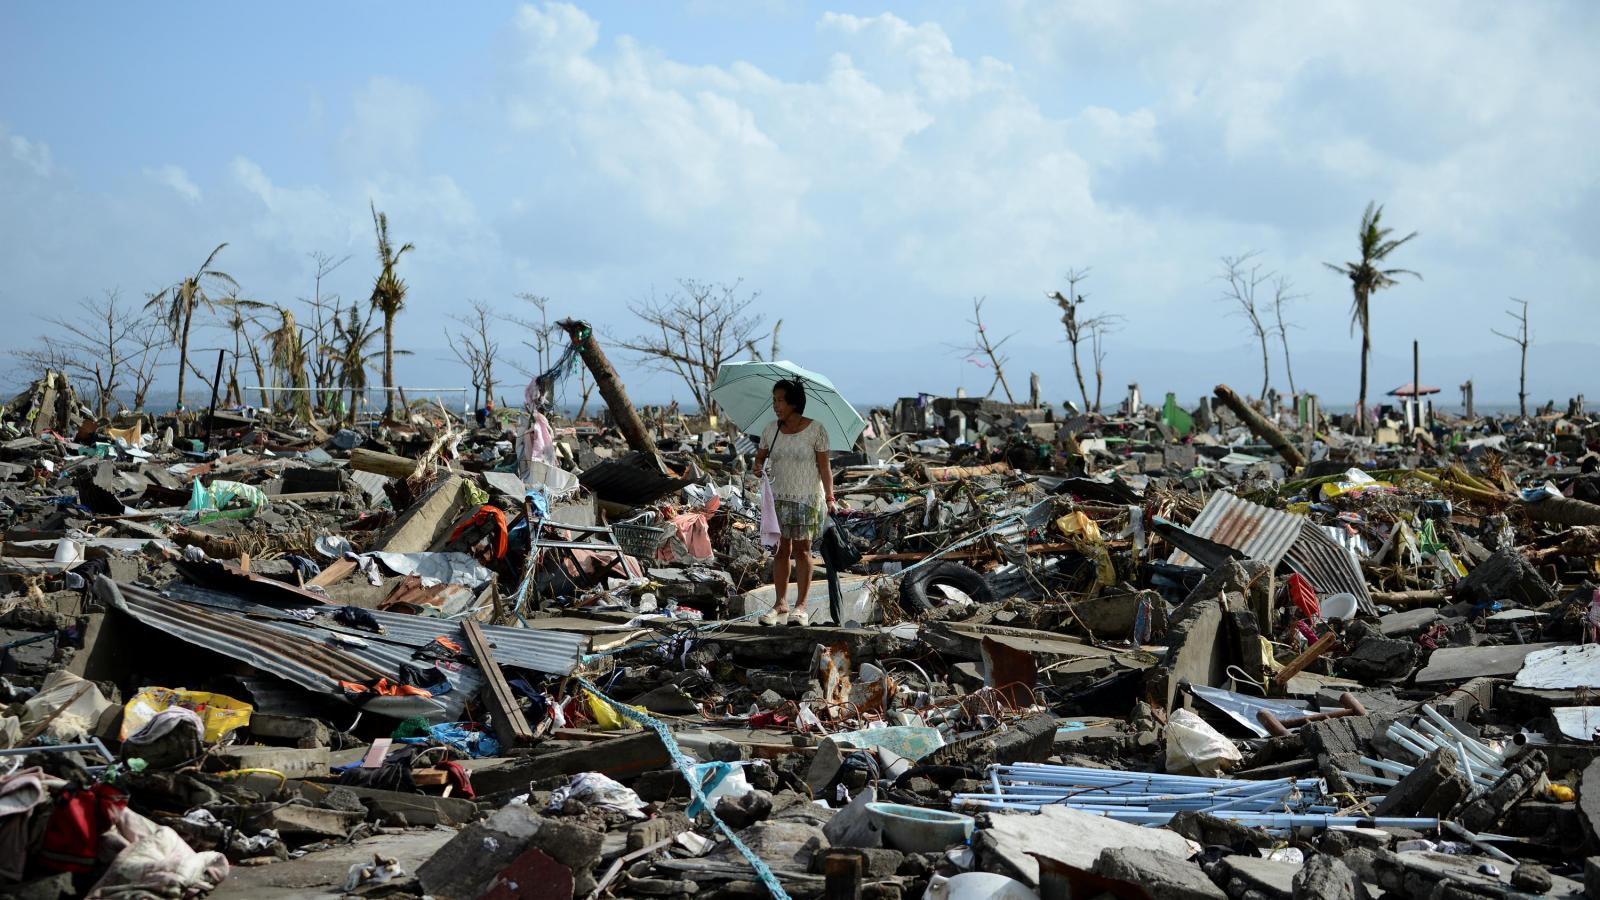 'Qatari Day of Solidarity' for victims in Philippines and Somalia